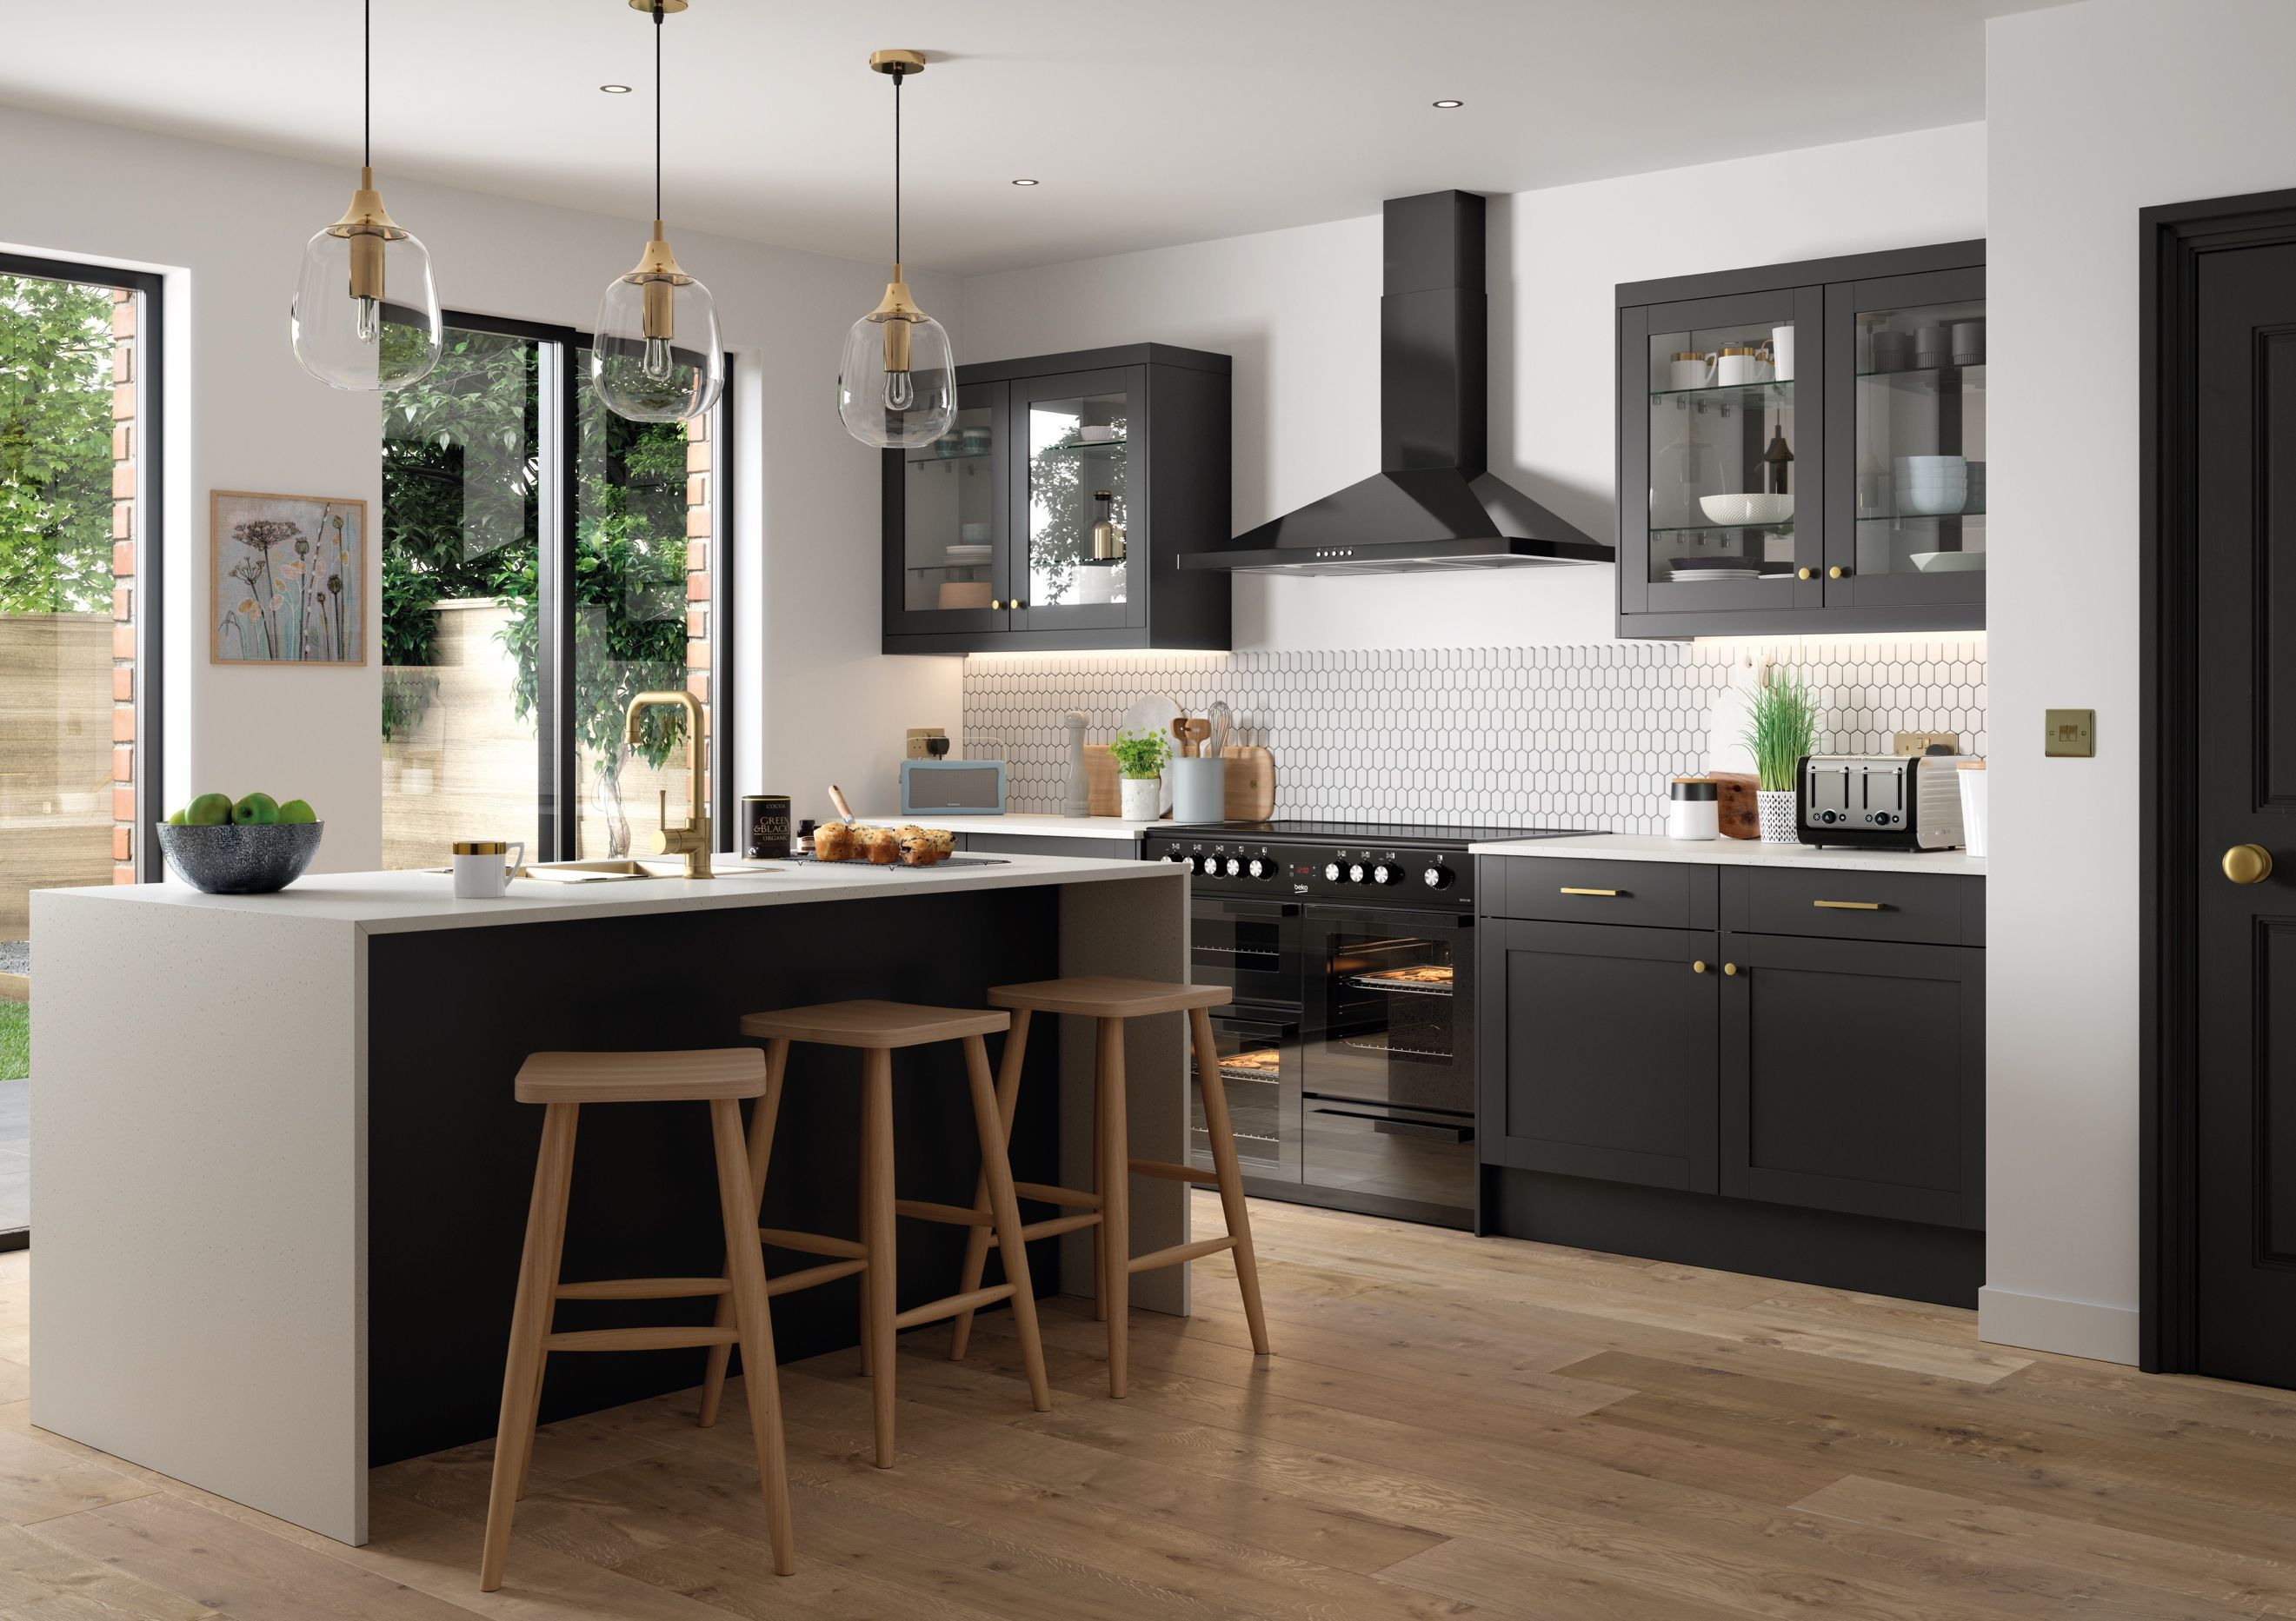 European Kitchen Designs   Best Ideas, Inspirations, Tips and ...